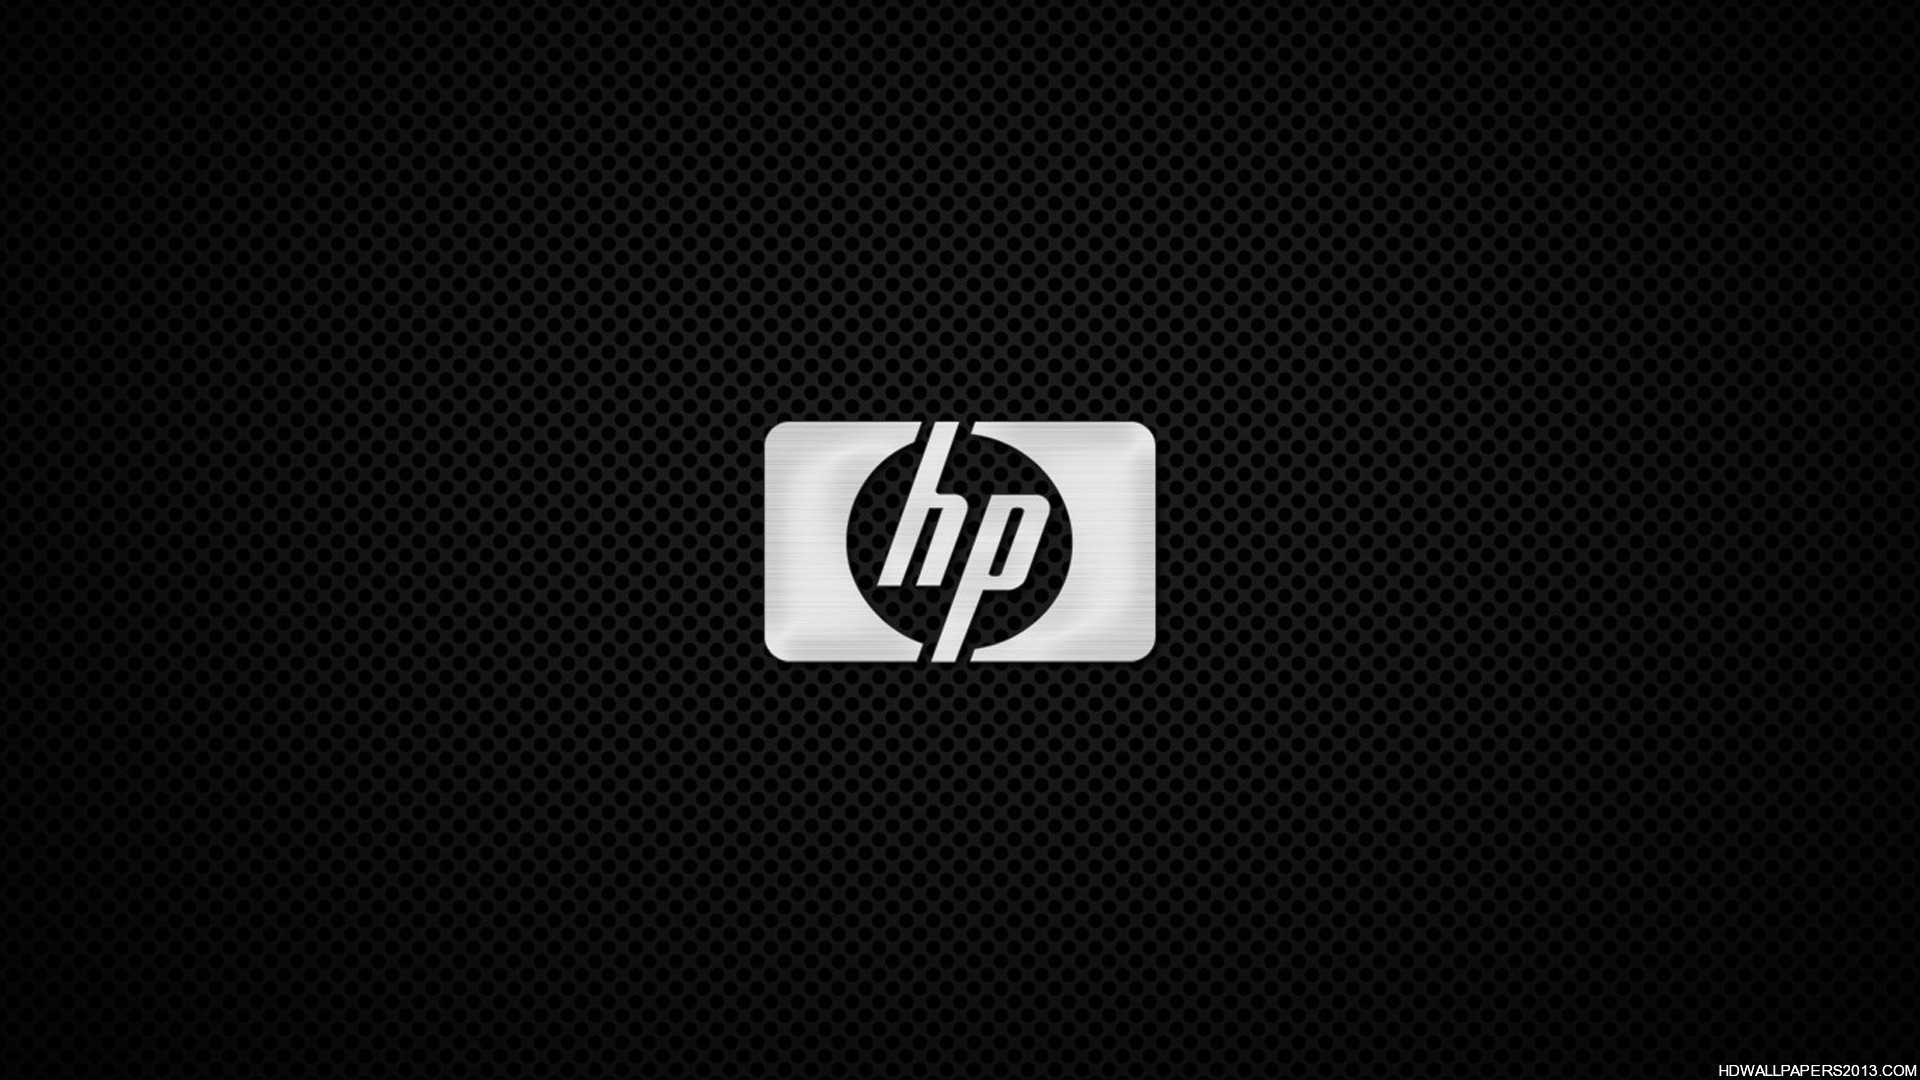 HP Wallpaper For Laptop High Definition Wallpapers 1920x1080